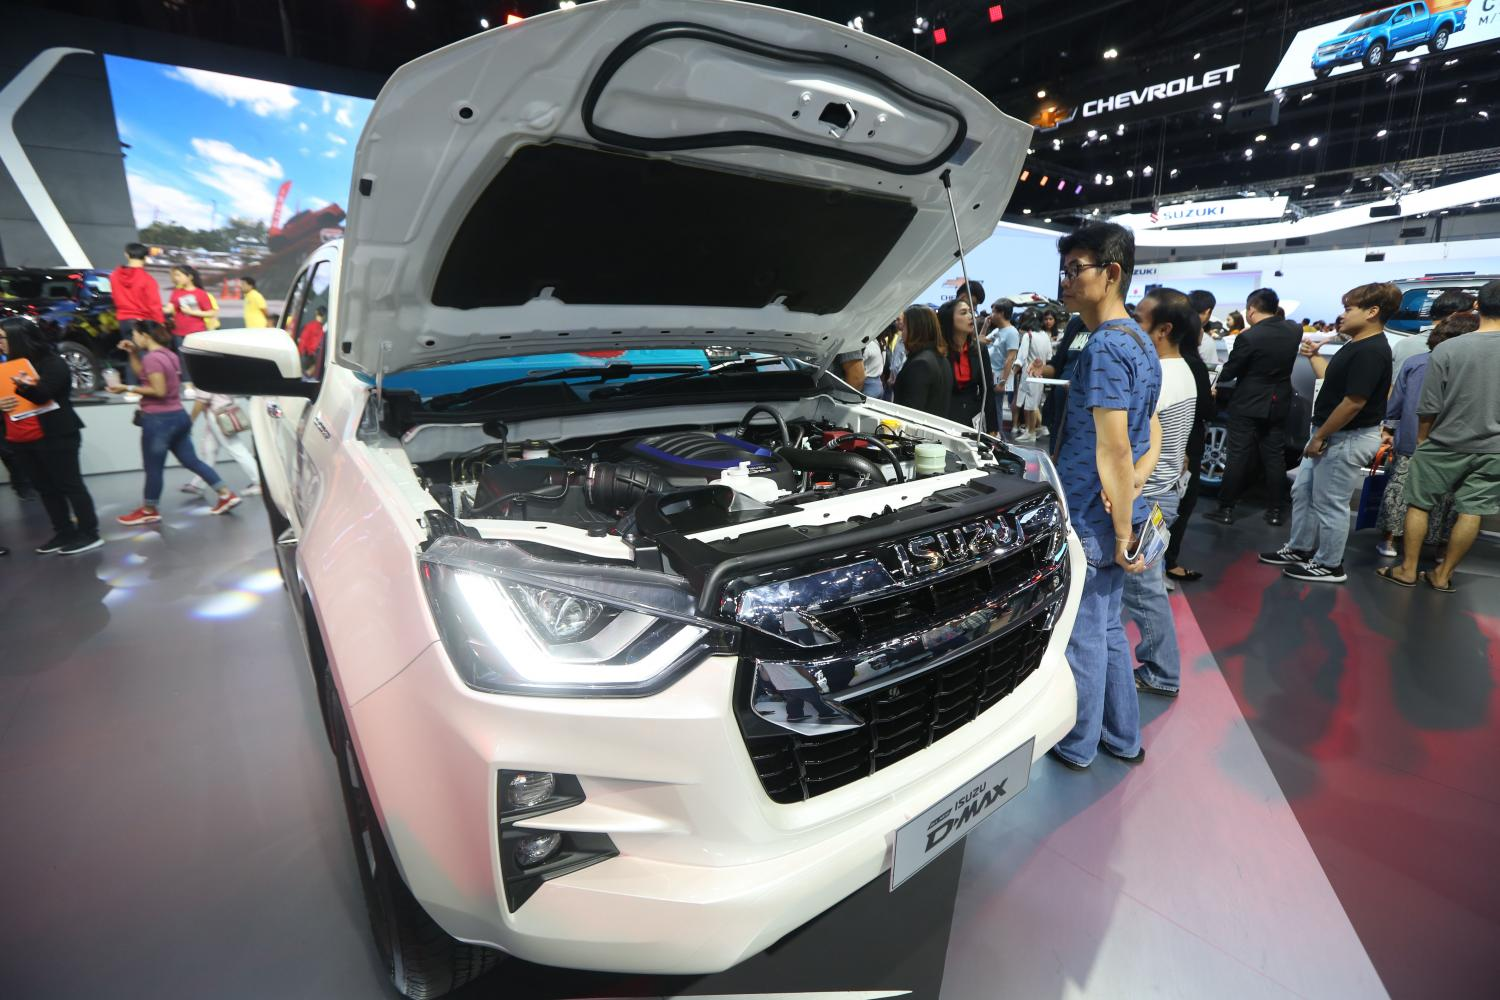 Buyers are taking a look Isuzu pickups at the latest Motor Expo. Isuzu is downbeat on Thailand's car market in 2020, which it sees falling 7.7% to 930,000 units sold. (Varuth Hirunyatheb)